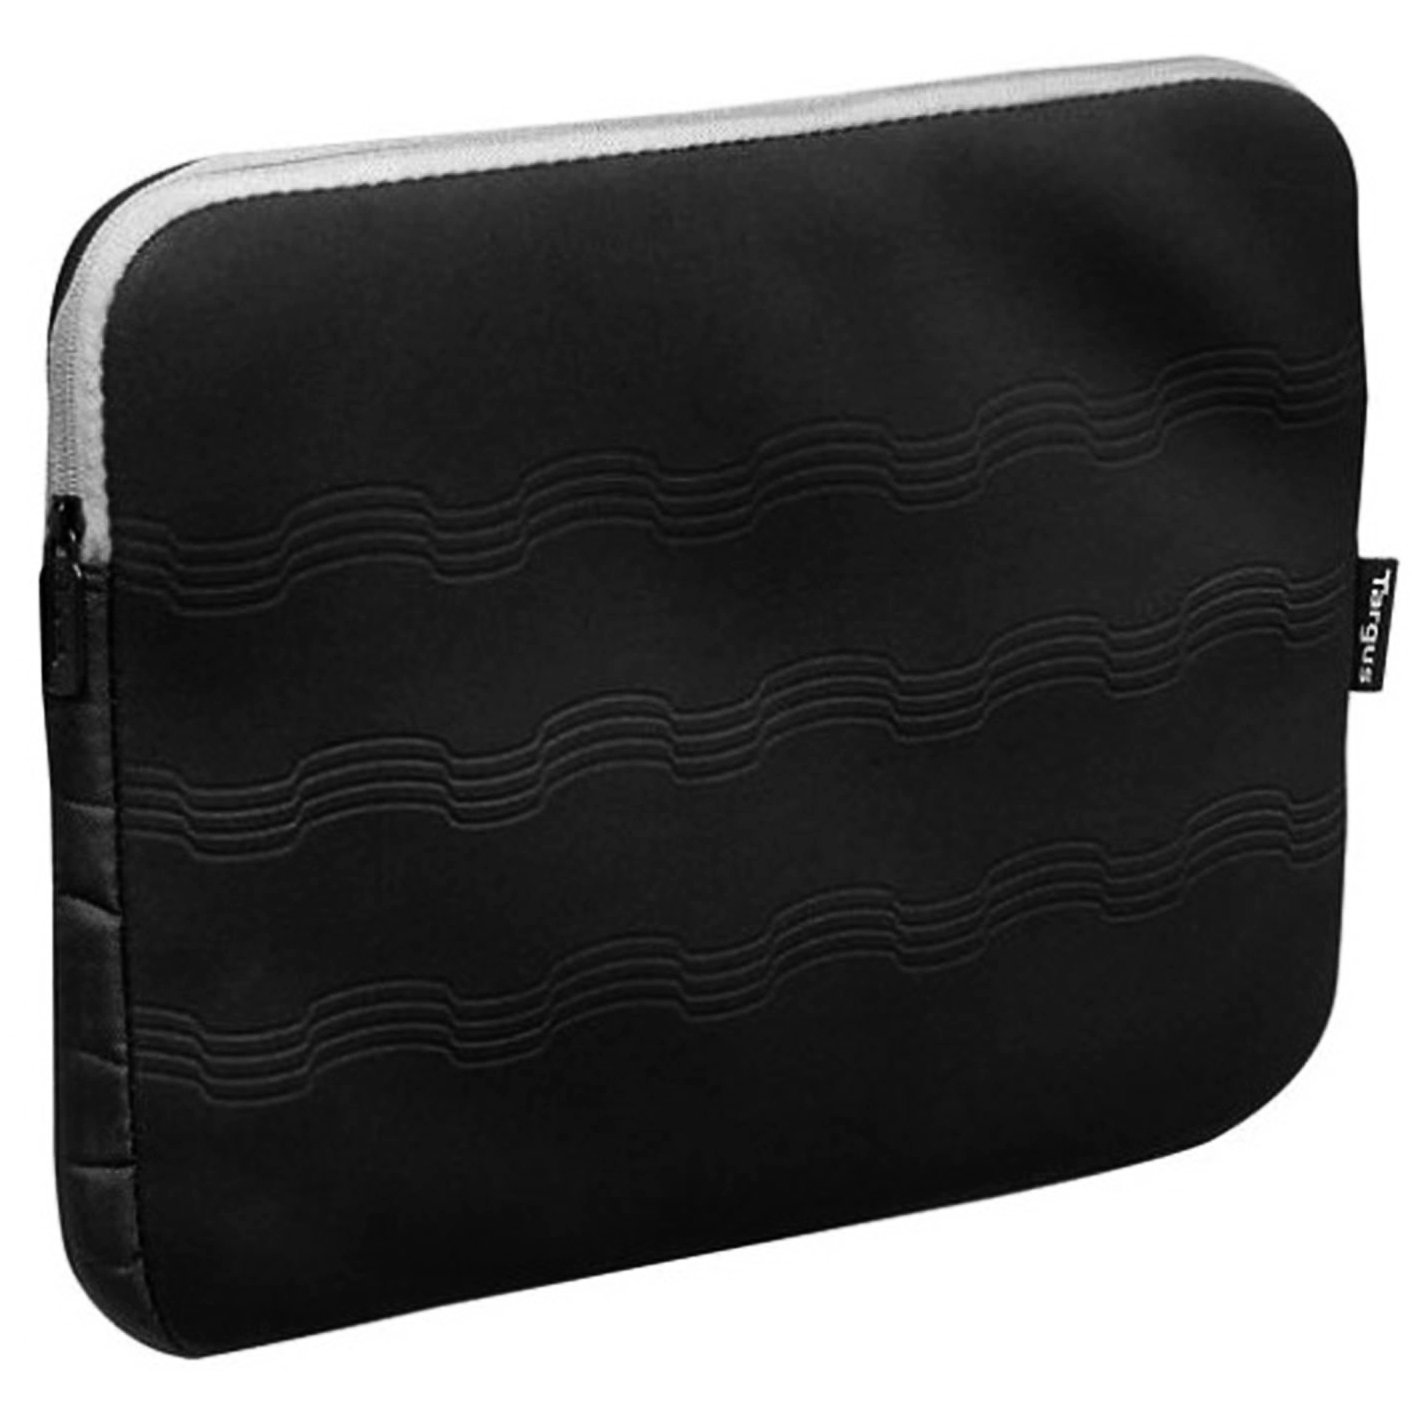 Targus Gray//Black-Fits most laptops with up to a 15.6 Debossed Laptop Sleeve